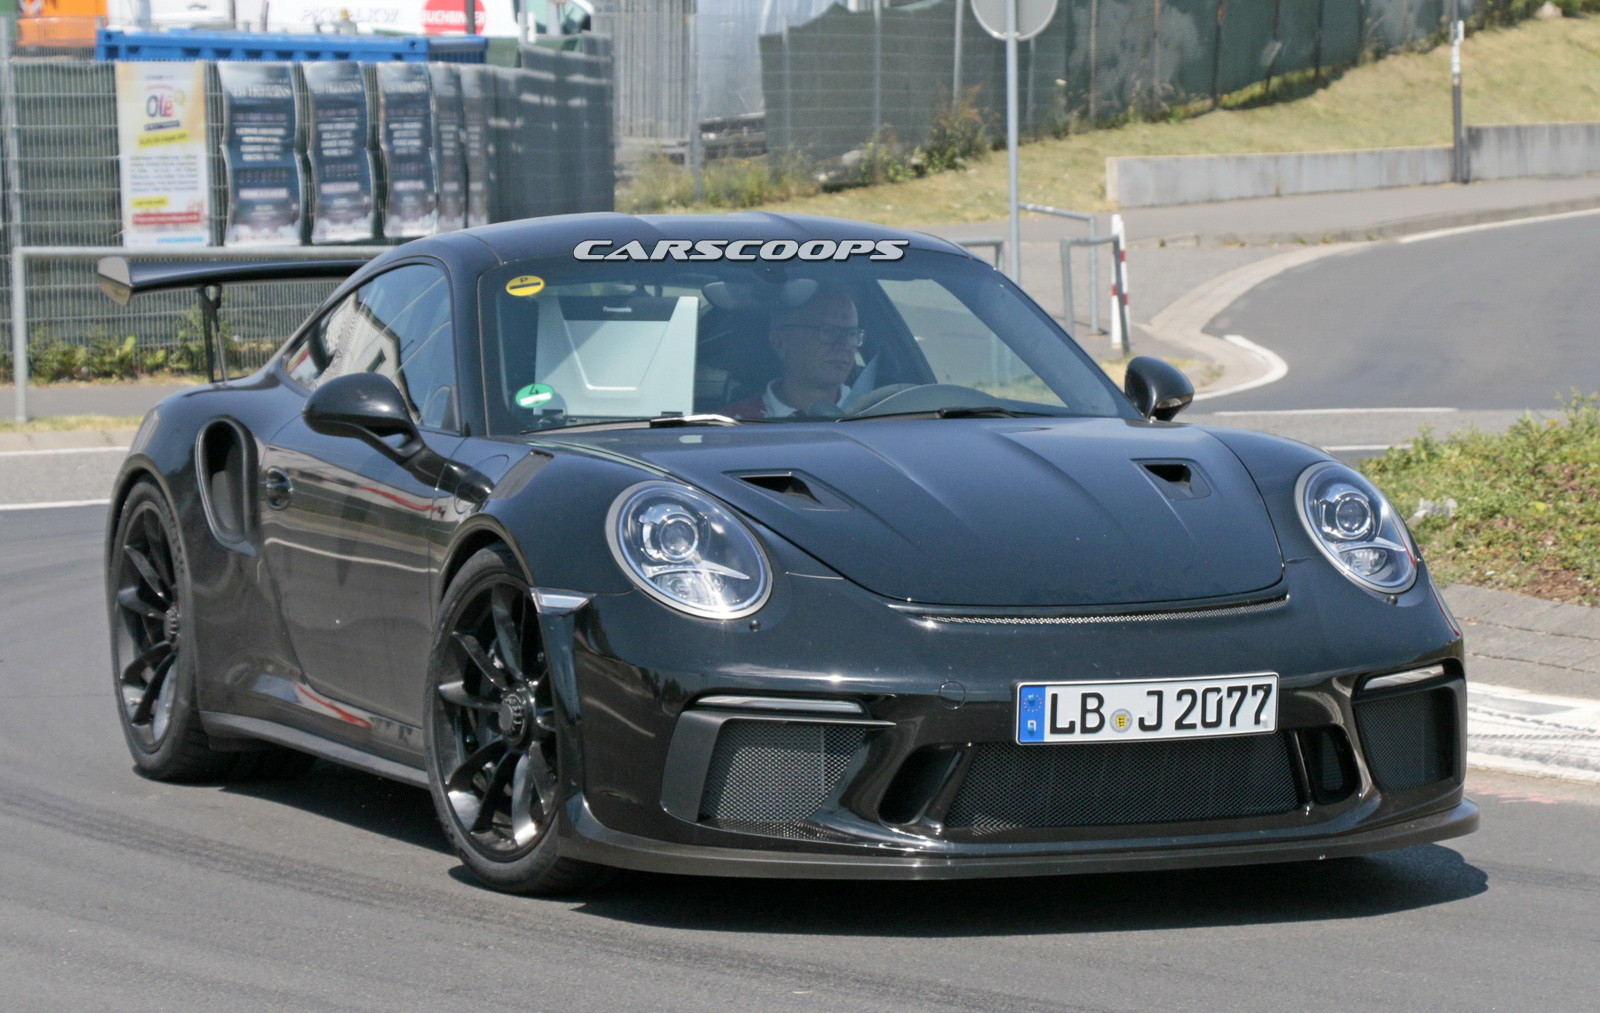 Upcoming Porsche 991 2 Gt3 Rs Coming With Gt2 Aero Bits And More Power